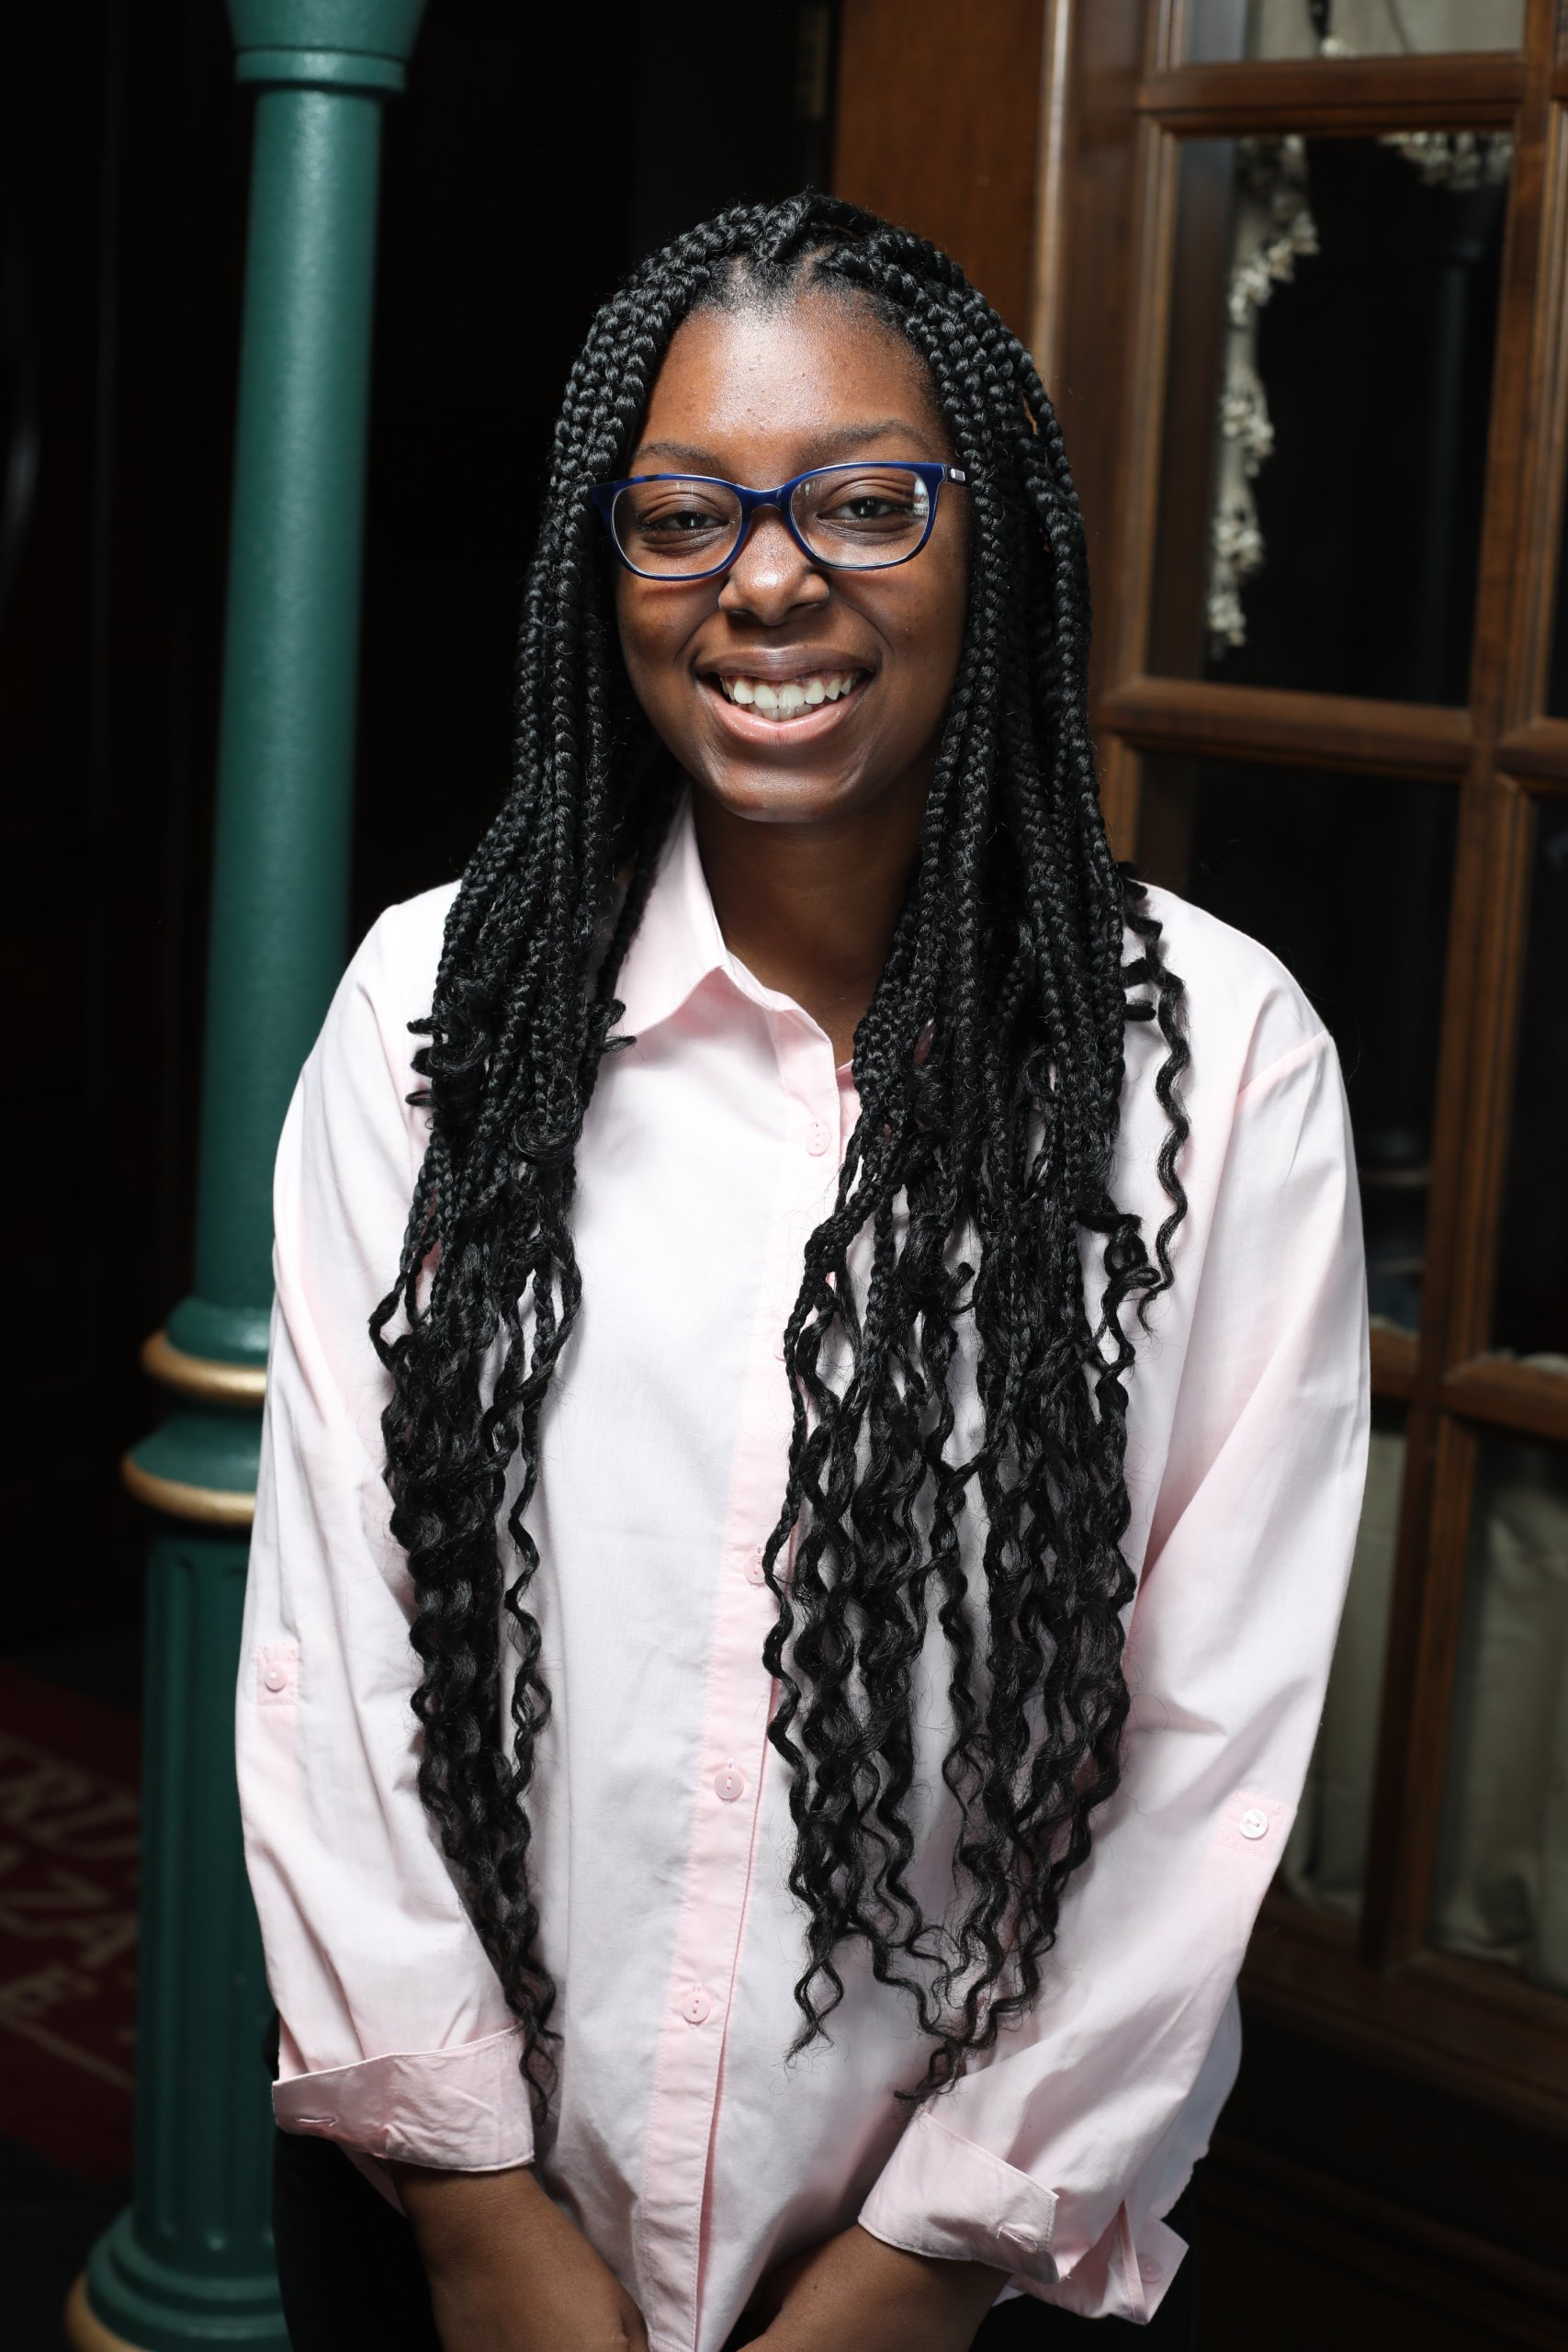 Congratulation to our 2021 Delaware Youth of the Year Adasia Hawkins!